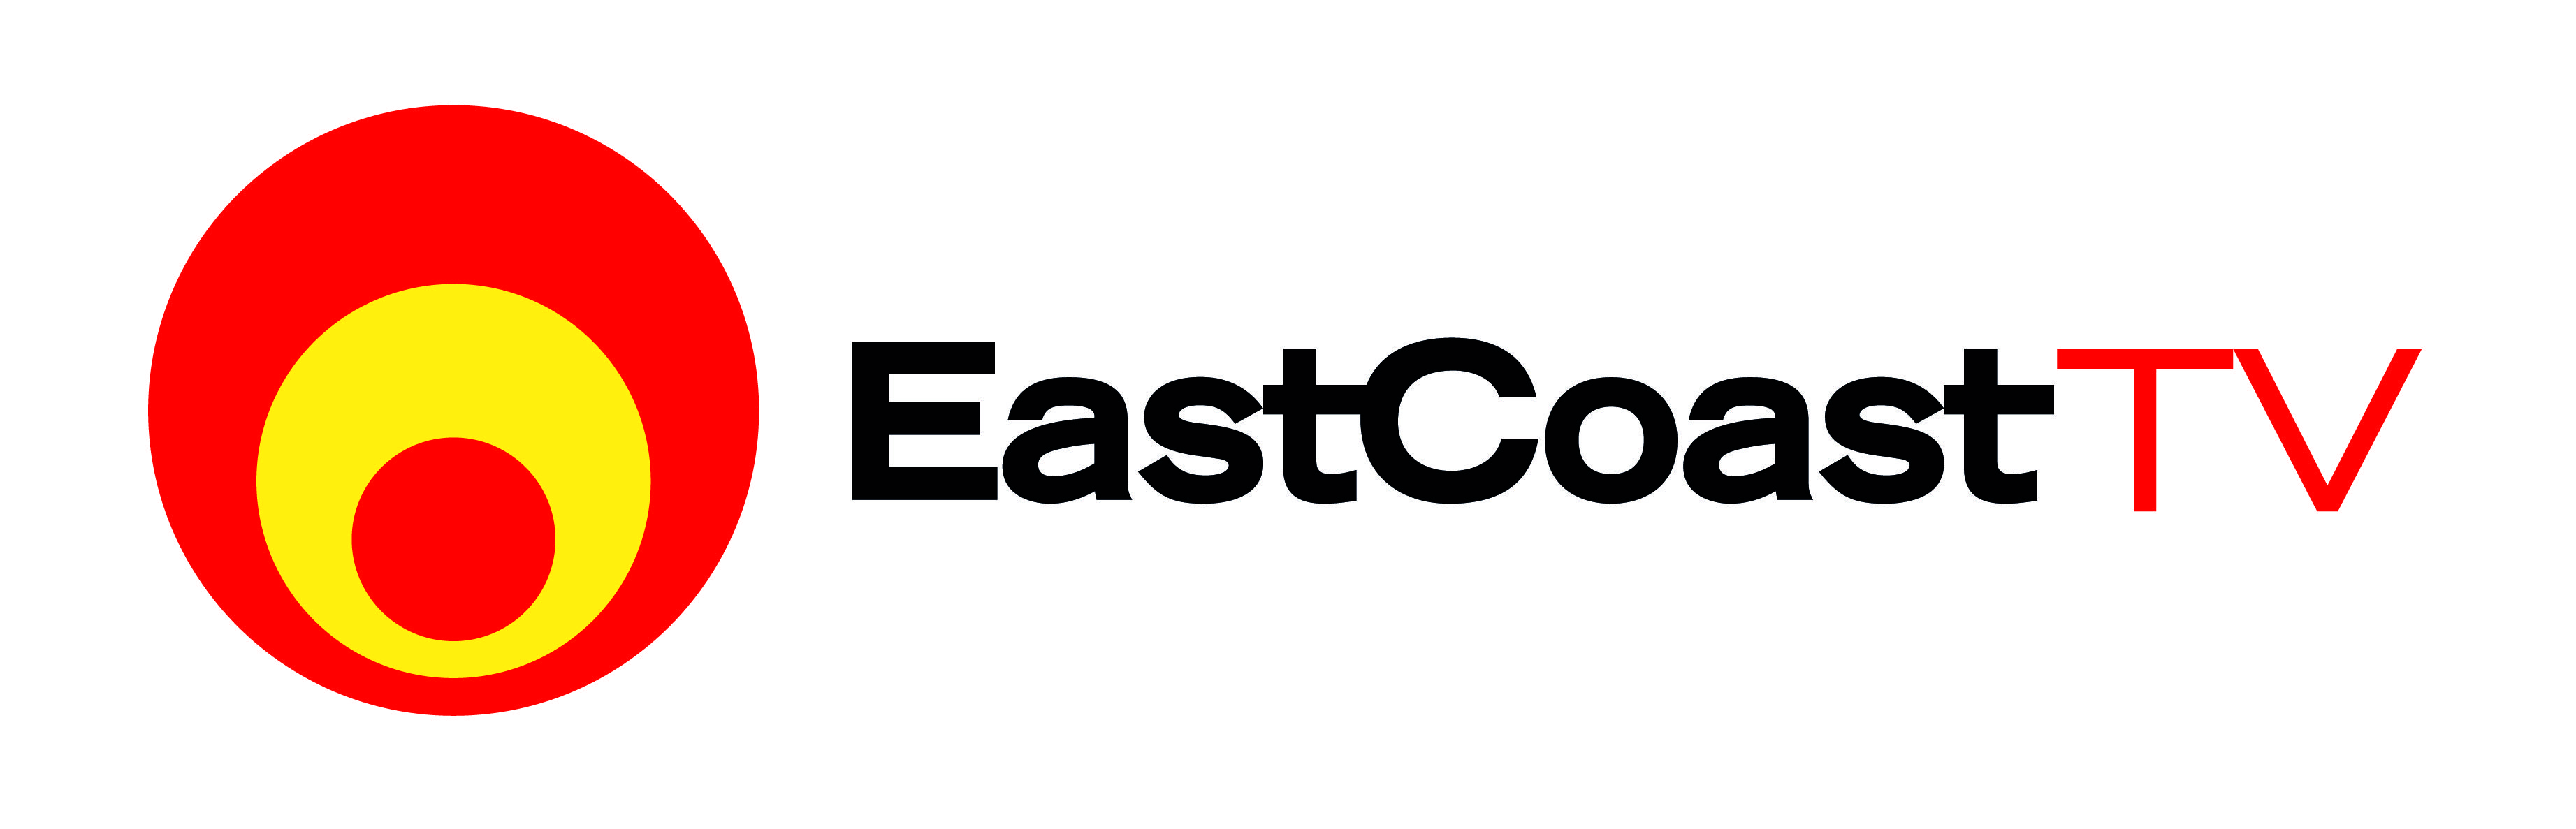 east coast TV